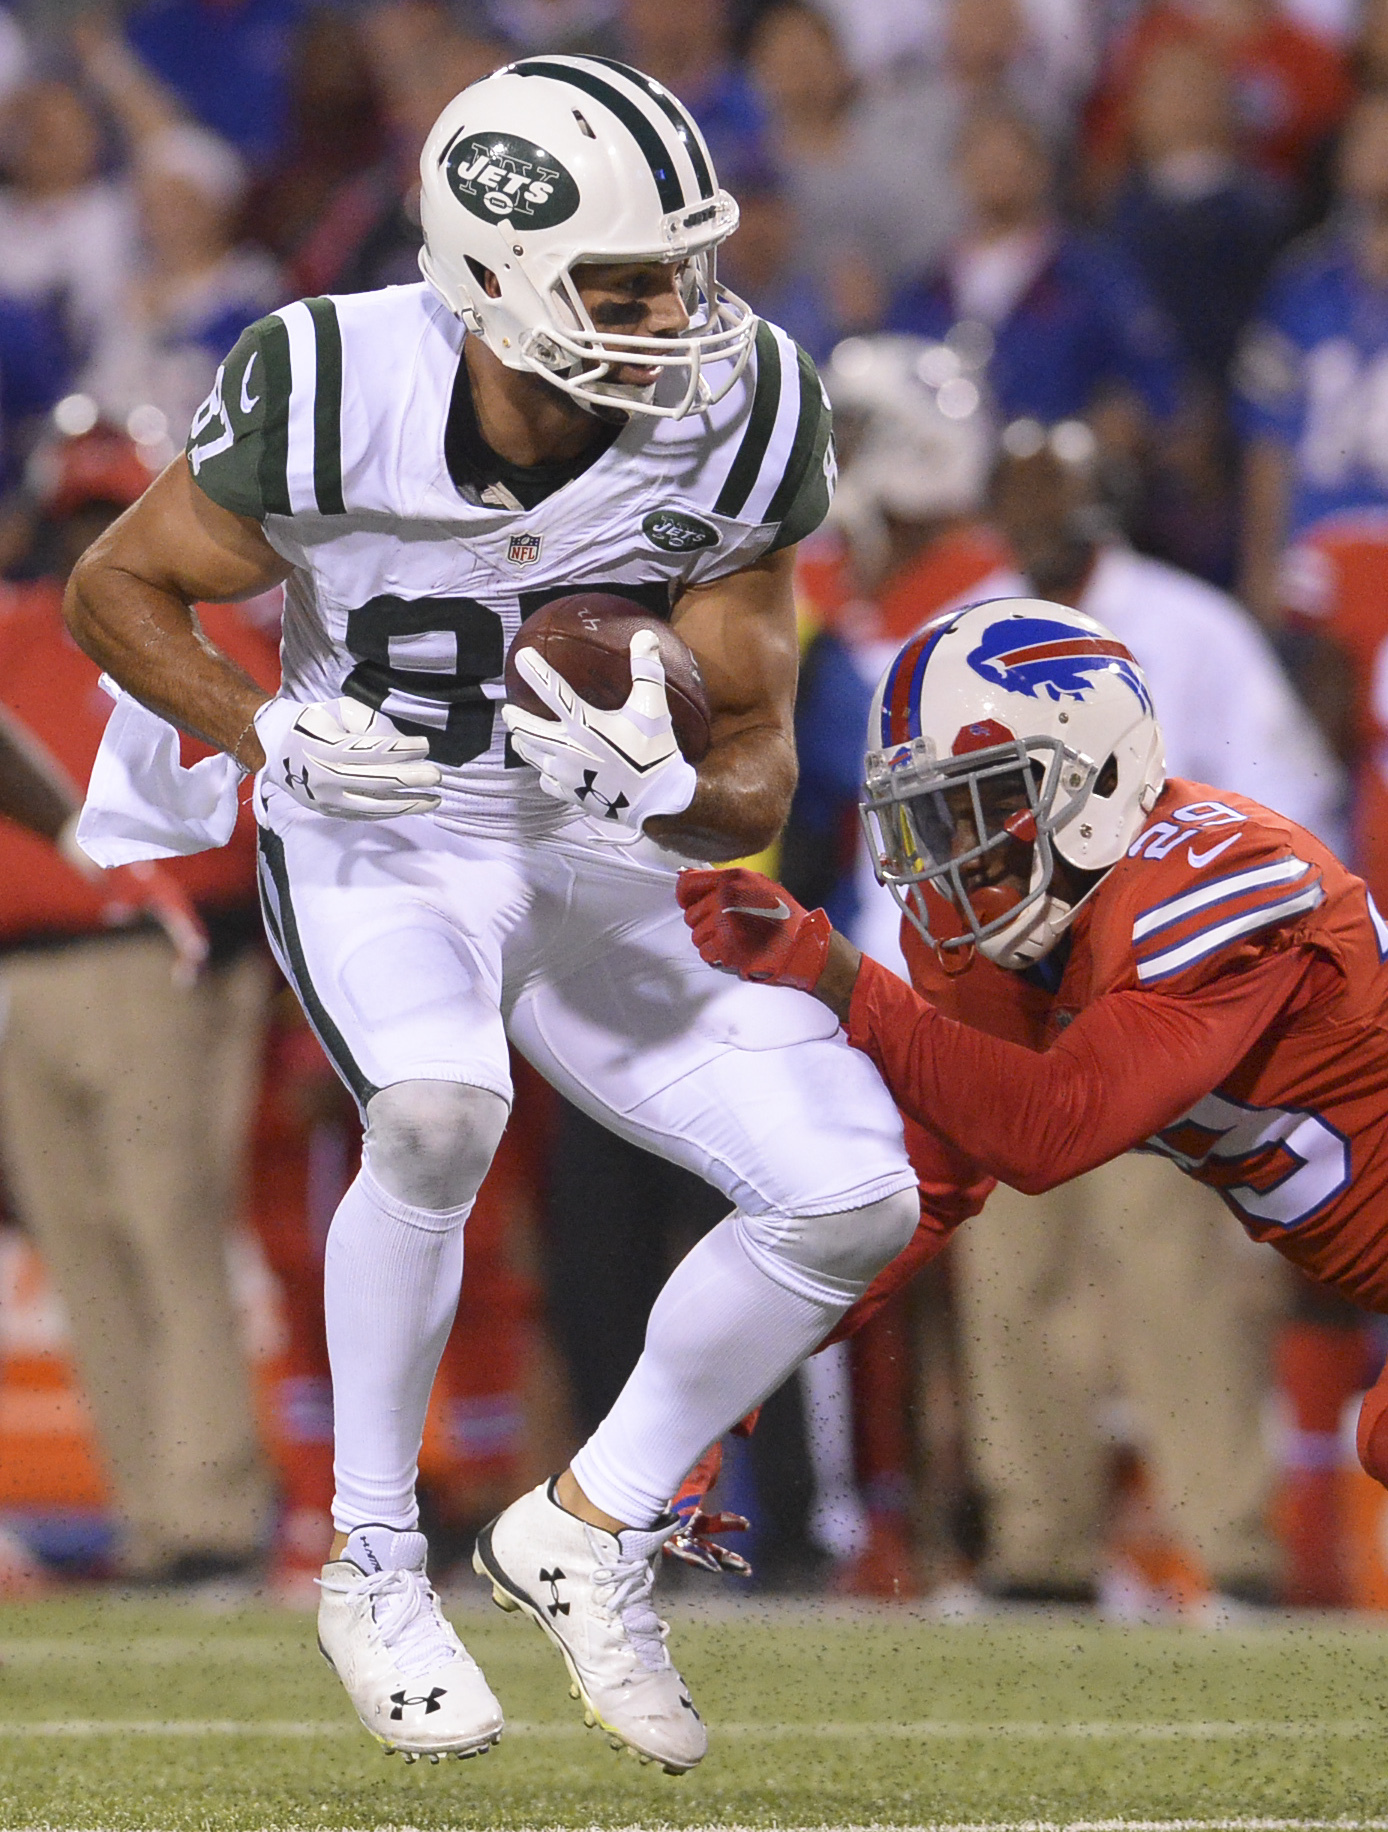 New York Jets wide receiver Eric Decker (87) is hit by Buffalo Bills defender Kevon Seymour (29) during the second half of an NFL football game Thursday, Sept. 15, 2016, in Orchard Park, N.Y. (AP Photo/Adrian Kraus)